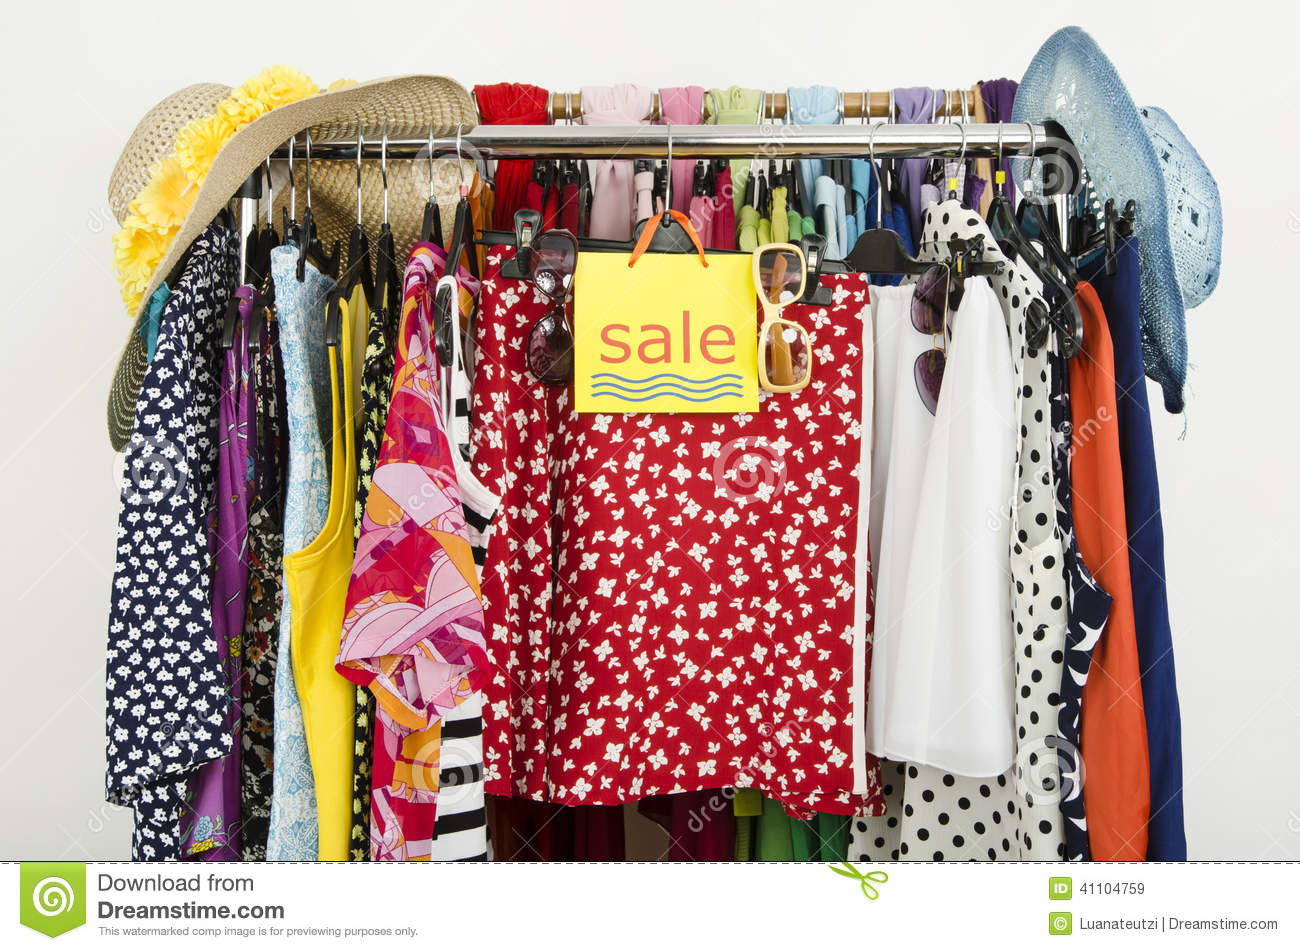 Shop a huge selection of clothing, from dresses to jeans to coats, on sale at gassws3m047.ga Find designer clothing for women, men and kids up to 70% off!